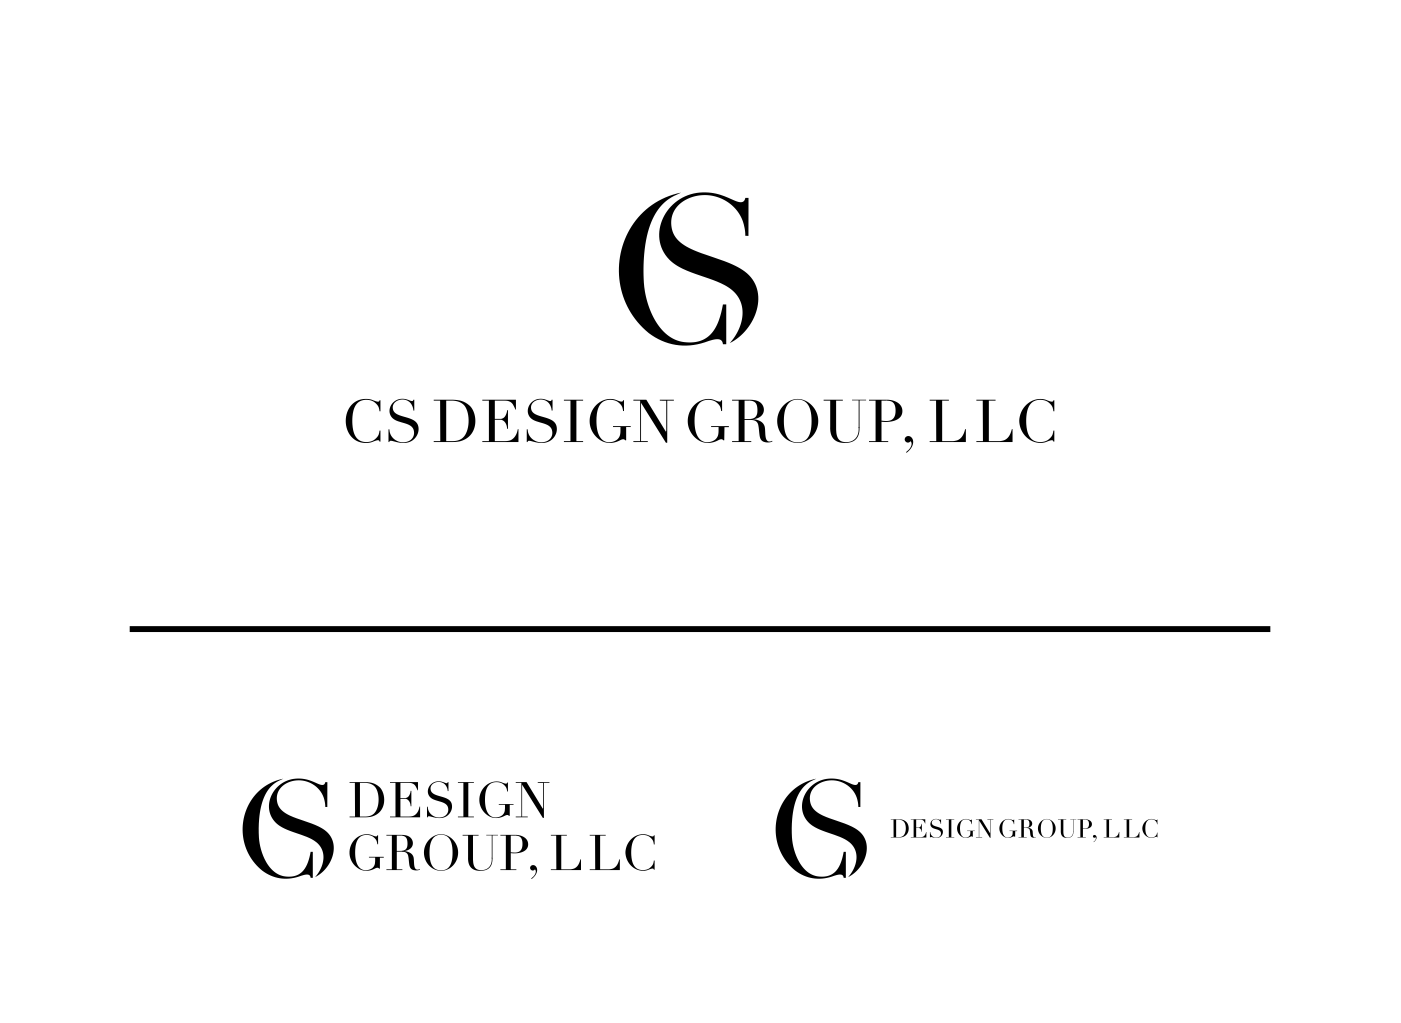 upmarket elegant consumer logo design for the letters c s as logo by wala design 7516509. Black Bedroom Furniture Sets. Home Design Ideas